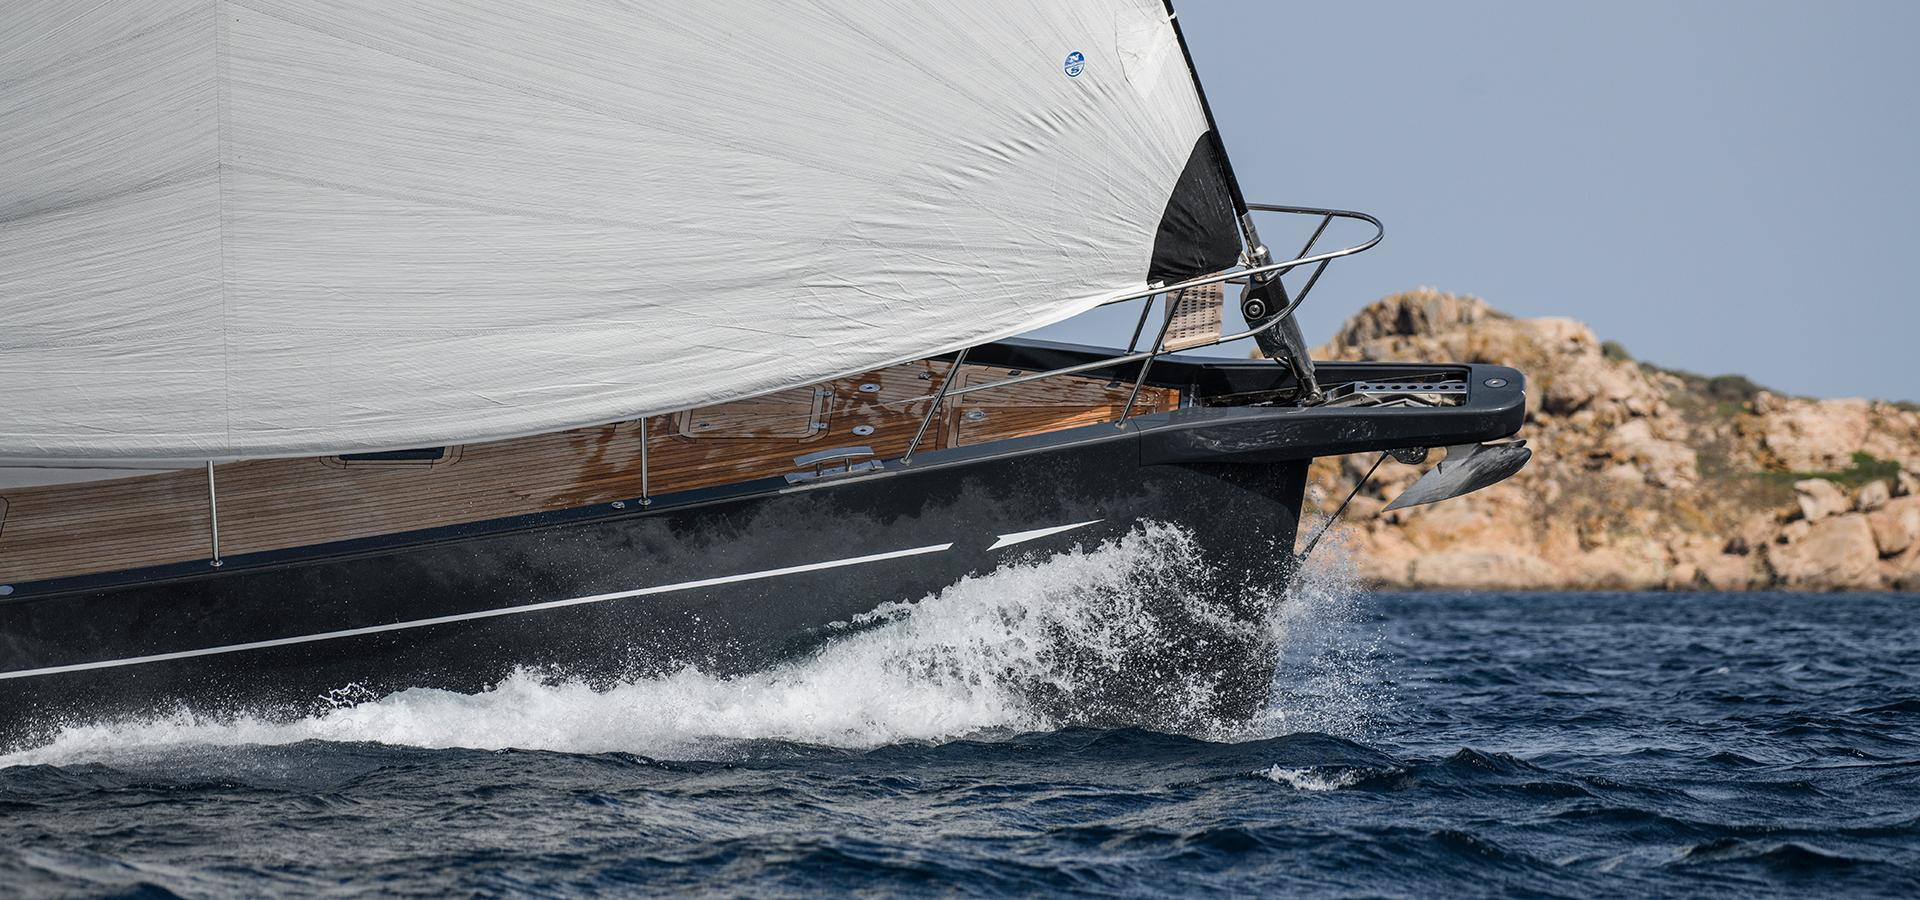 Oyster After Sales Sailing Yachts Services Opt1 D v2